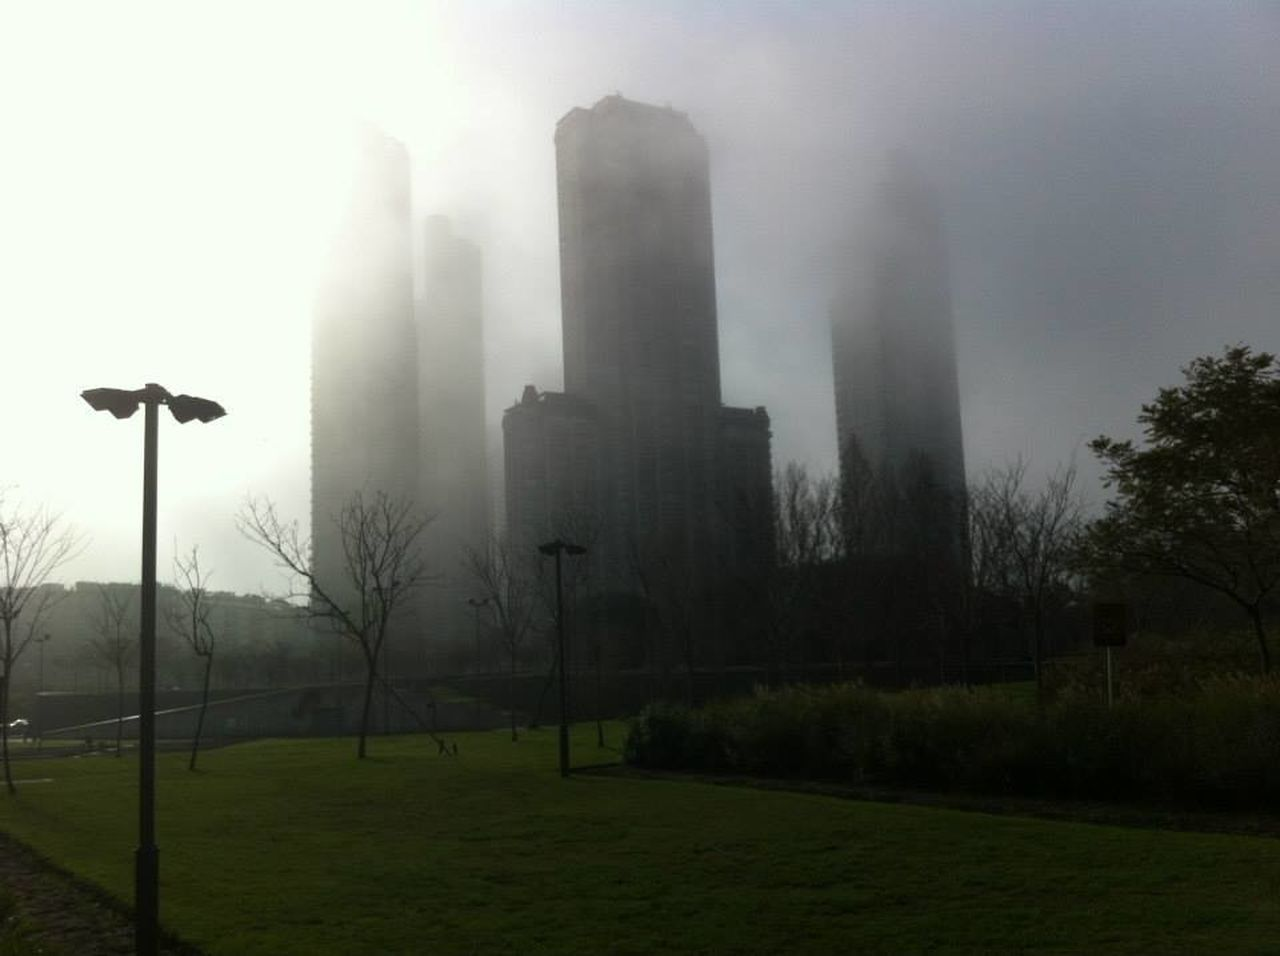 VIEW OF BUILDINGS IN FOGGY WEATHER